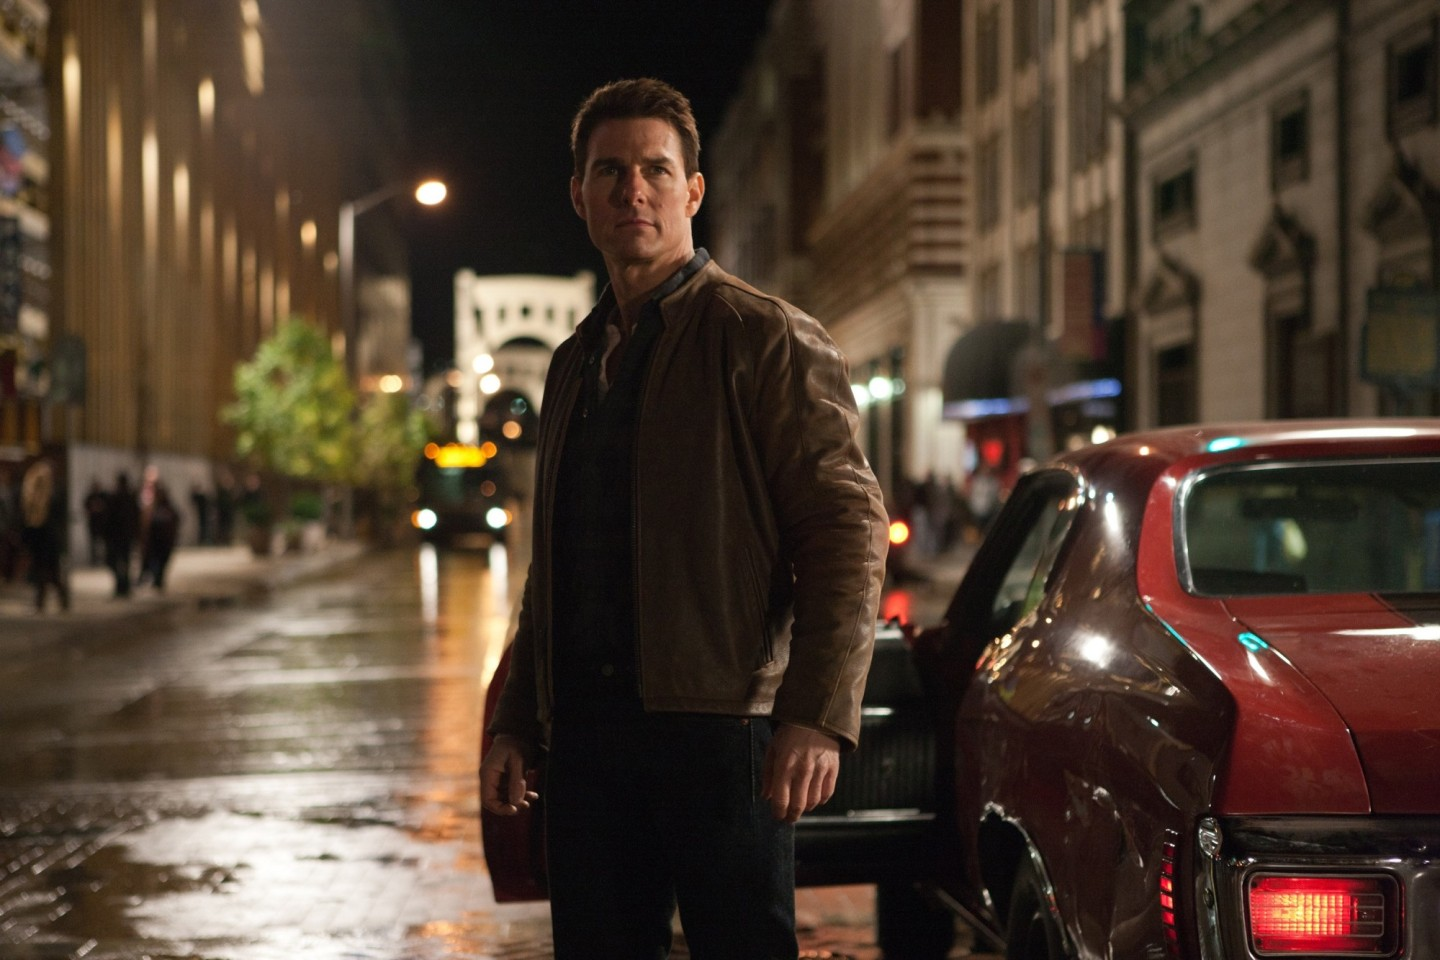 Jack Reacher gets out of car